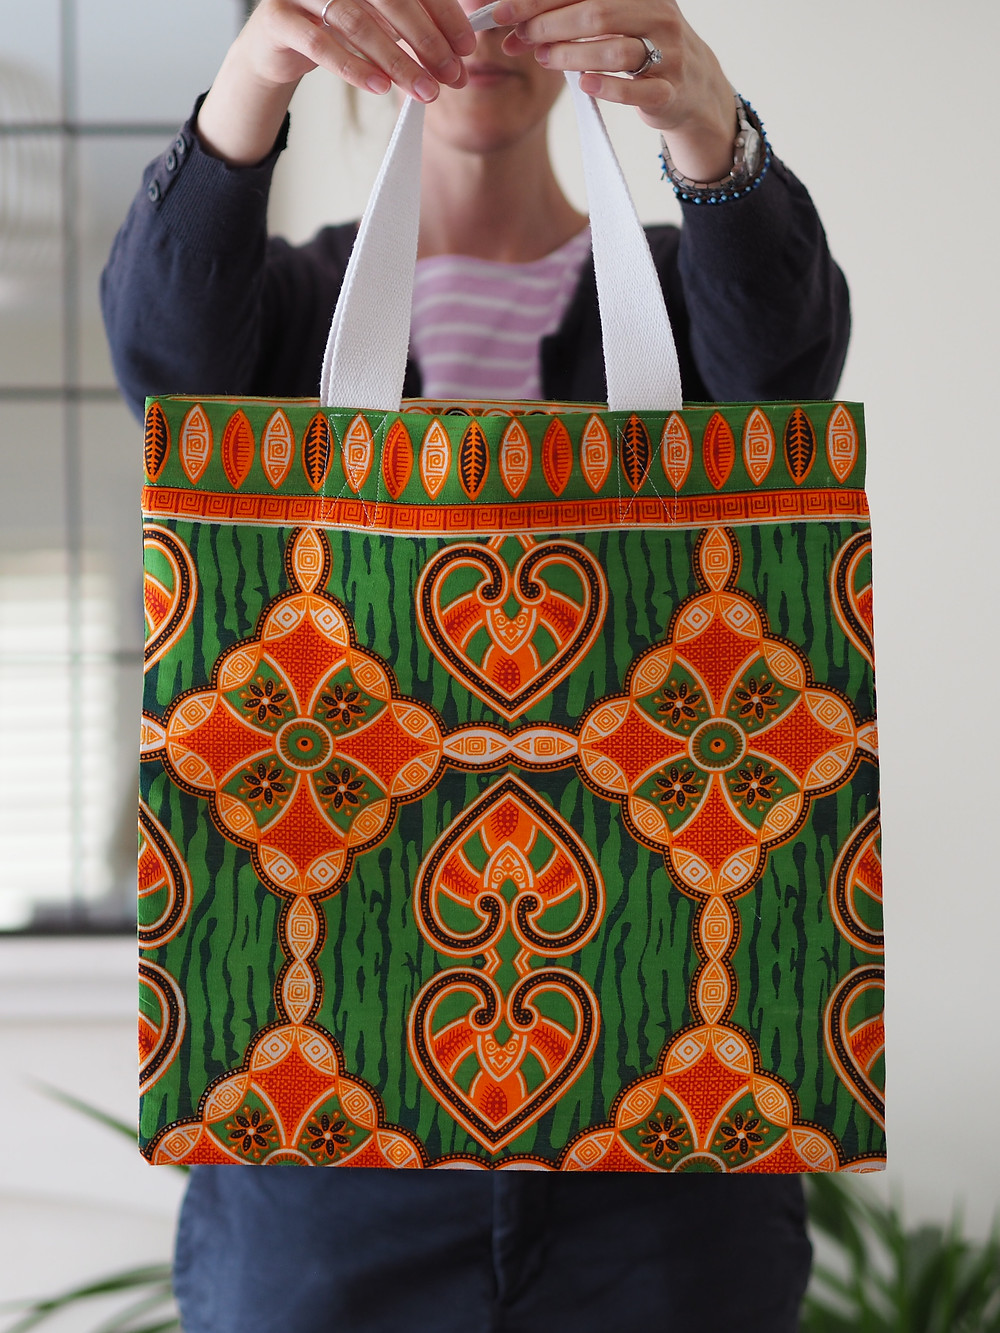 yellow and green handmade african market bag available to buy at Wild Home Online on Etsy